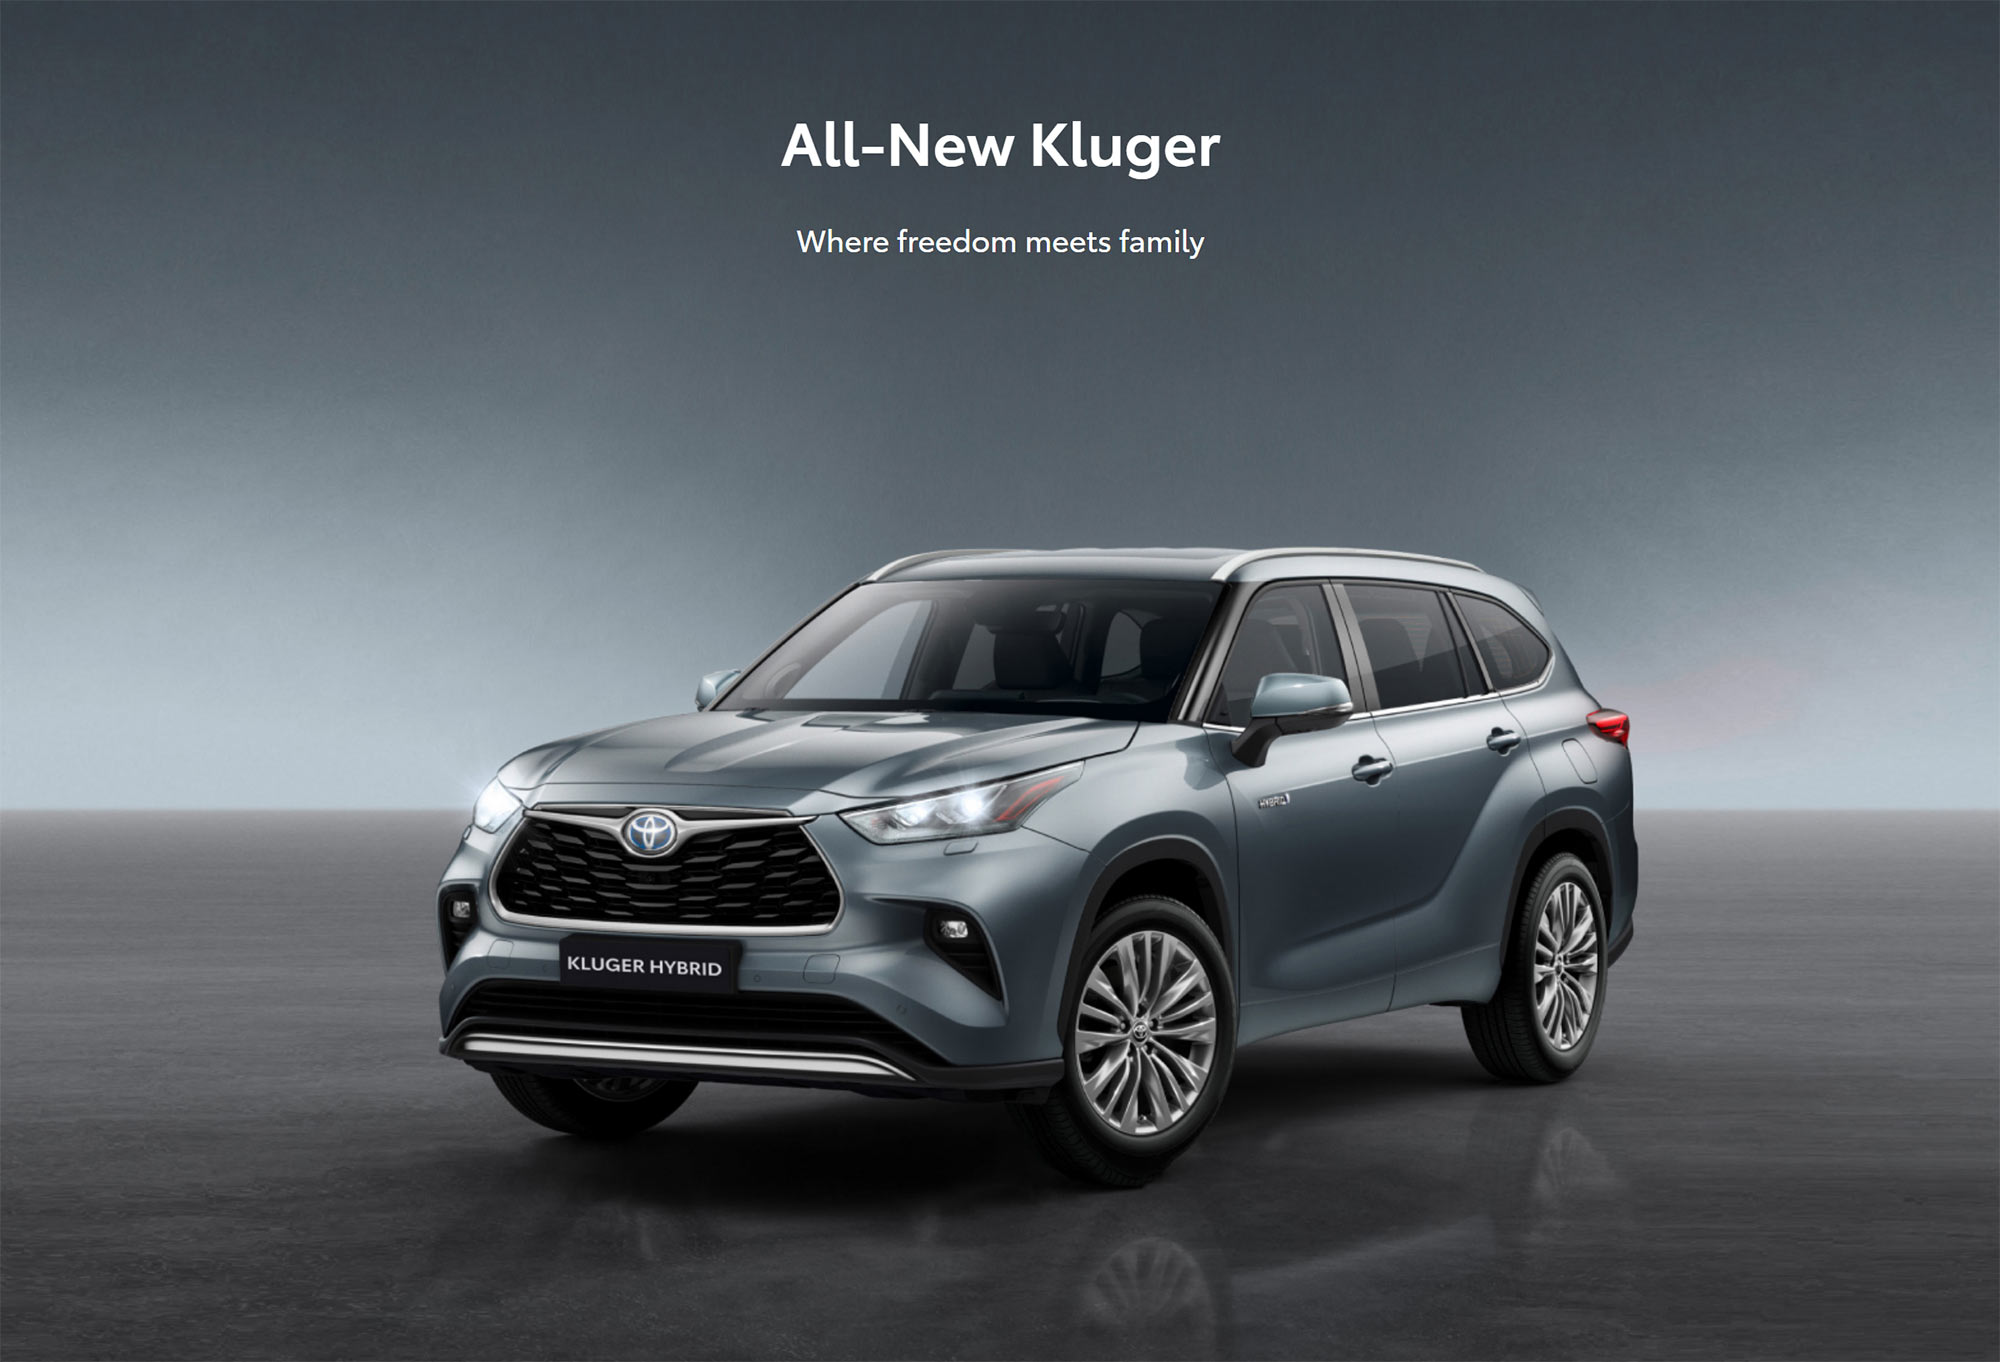 All New Kluger